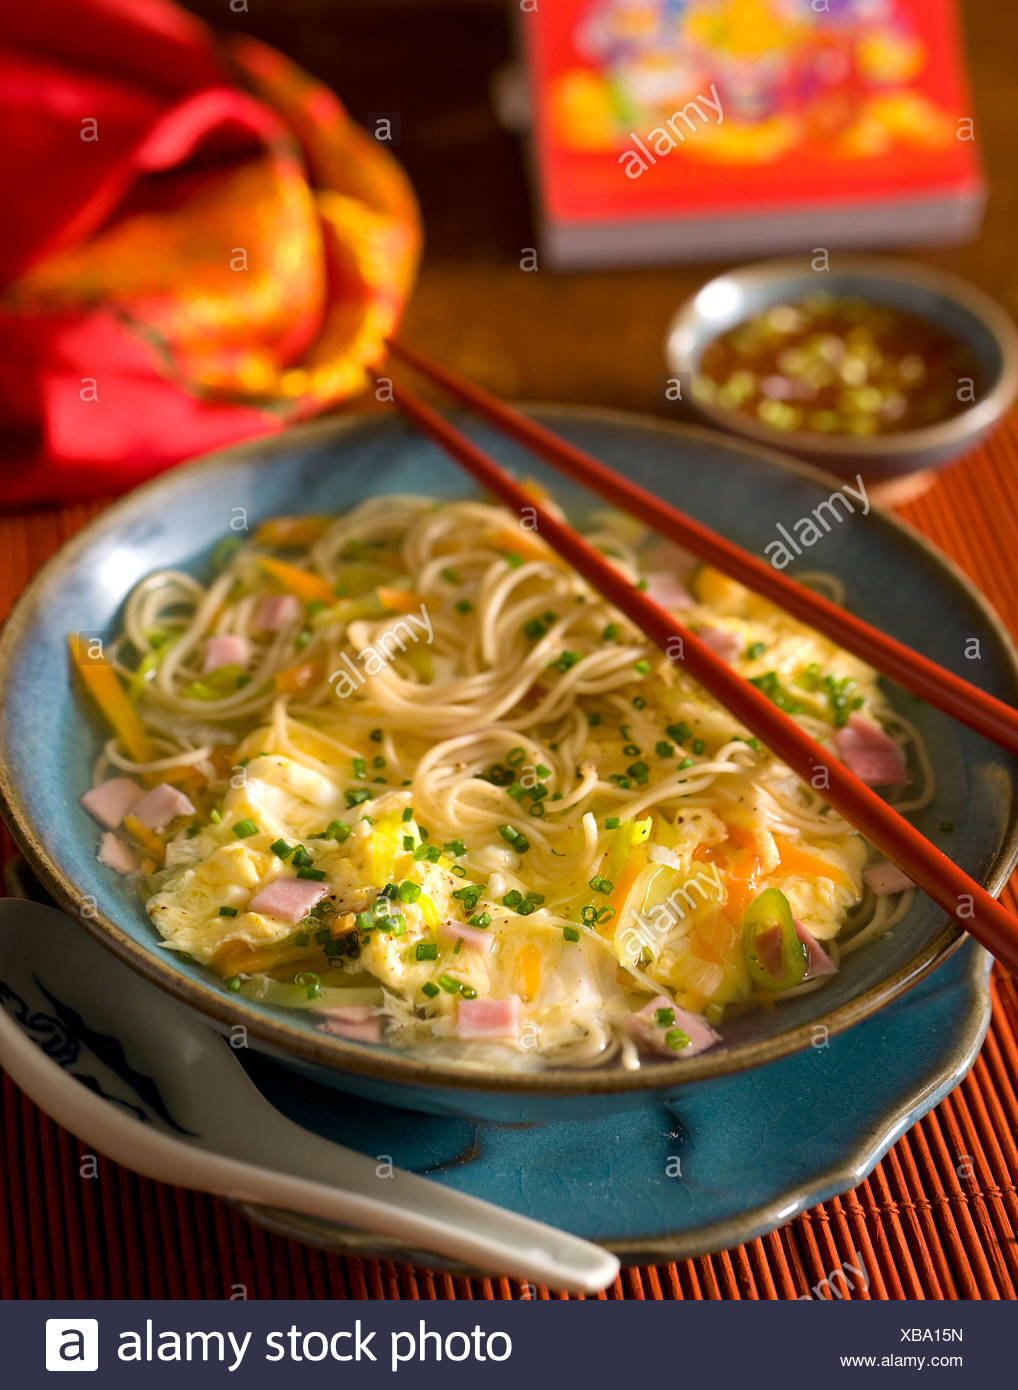 Chineese Noodles - Stock Image